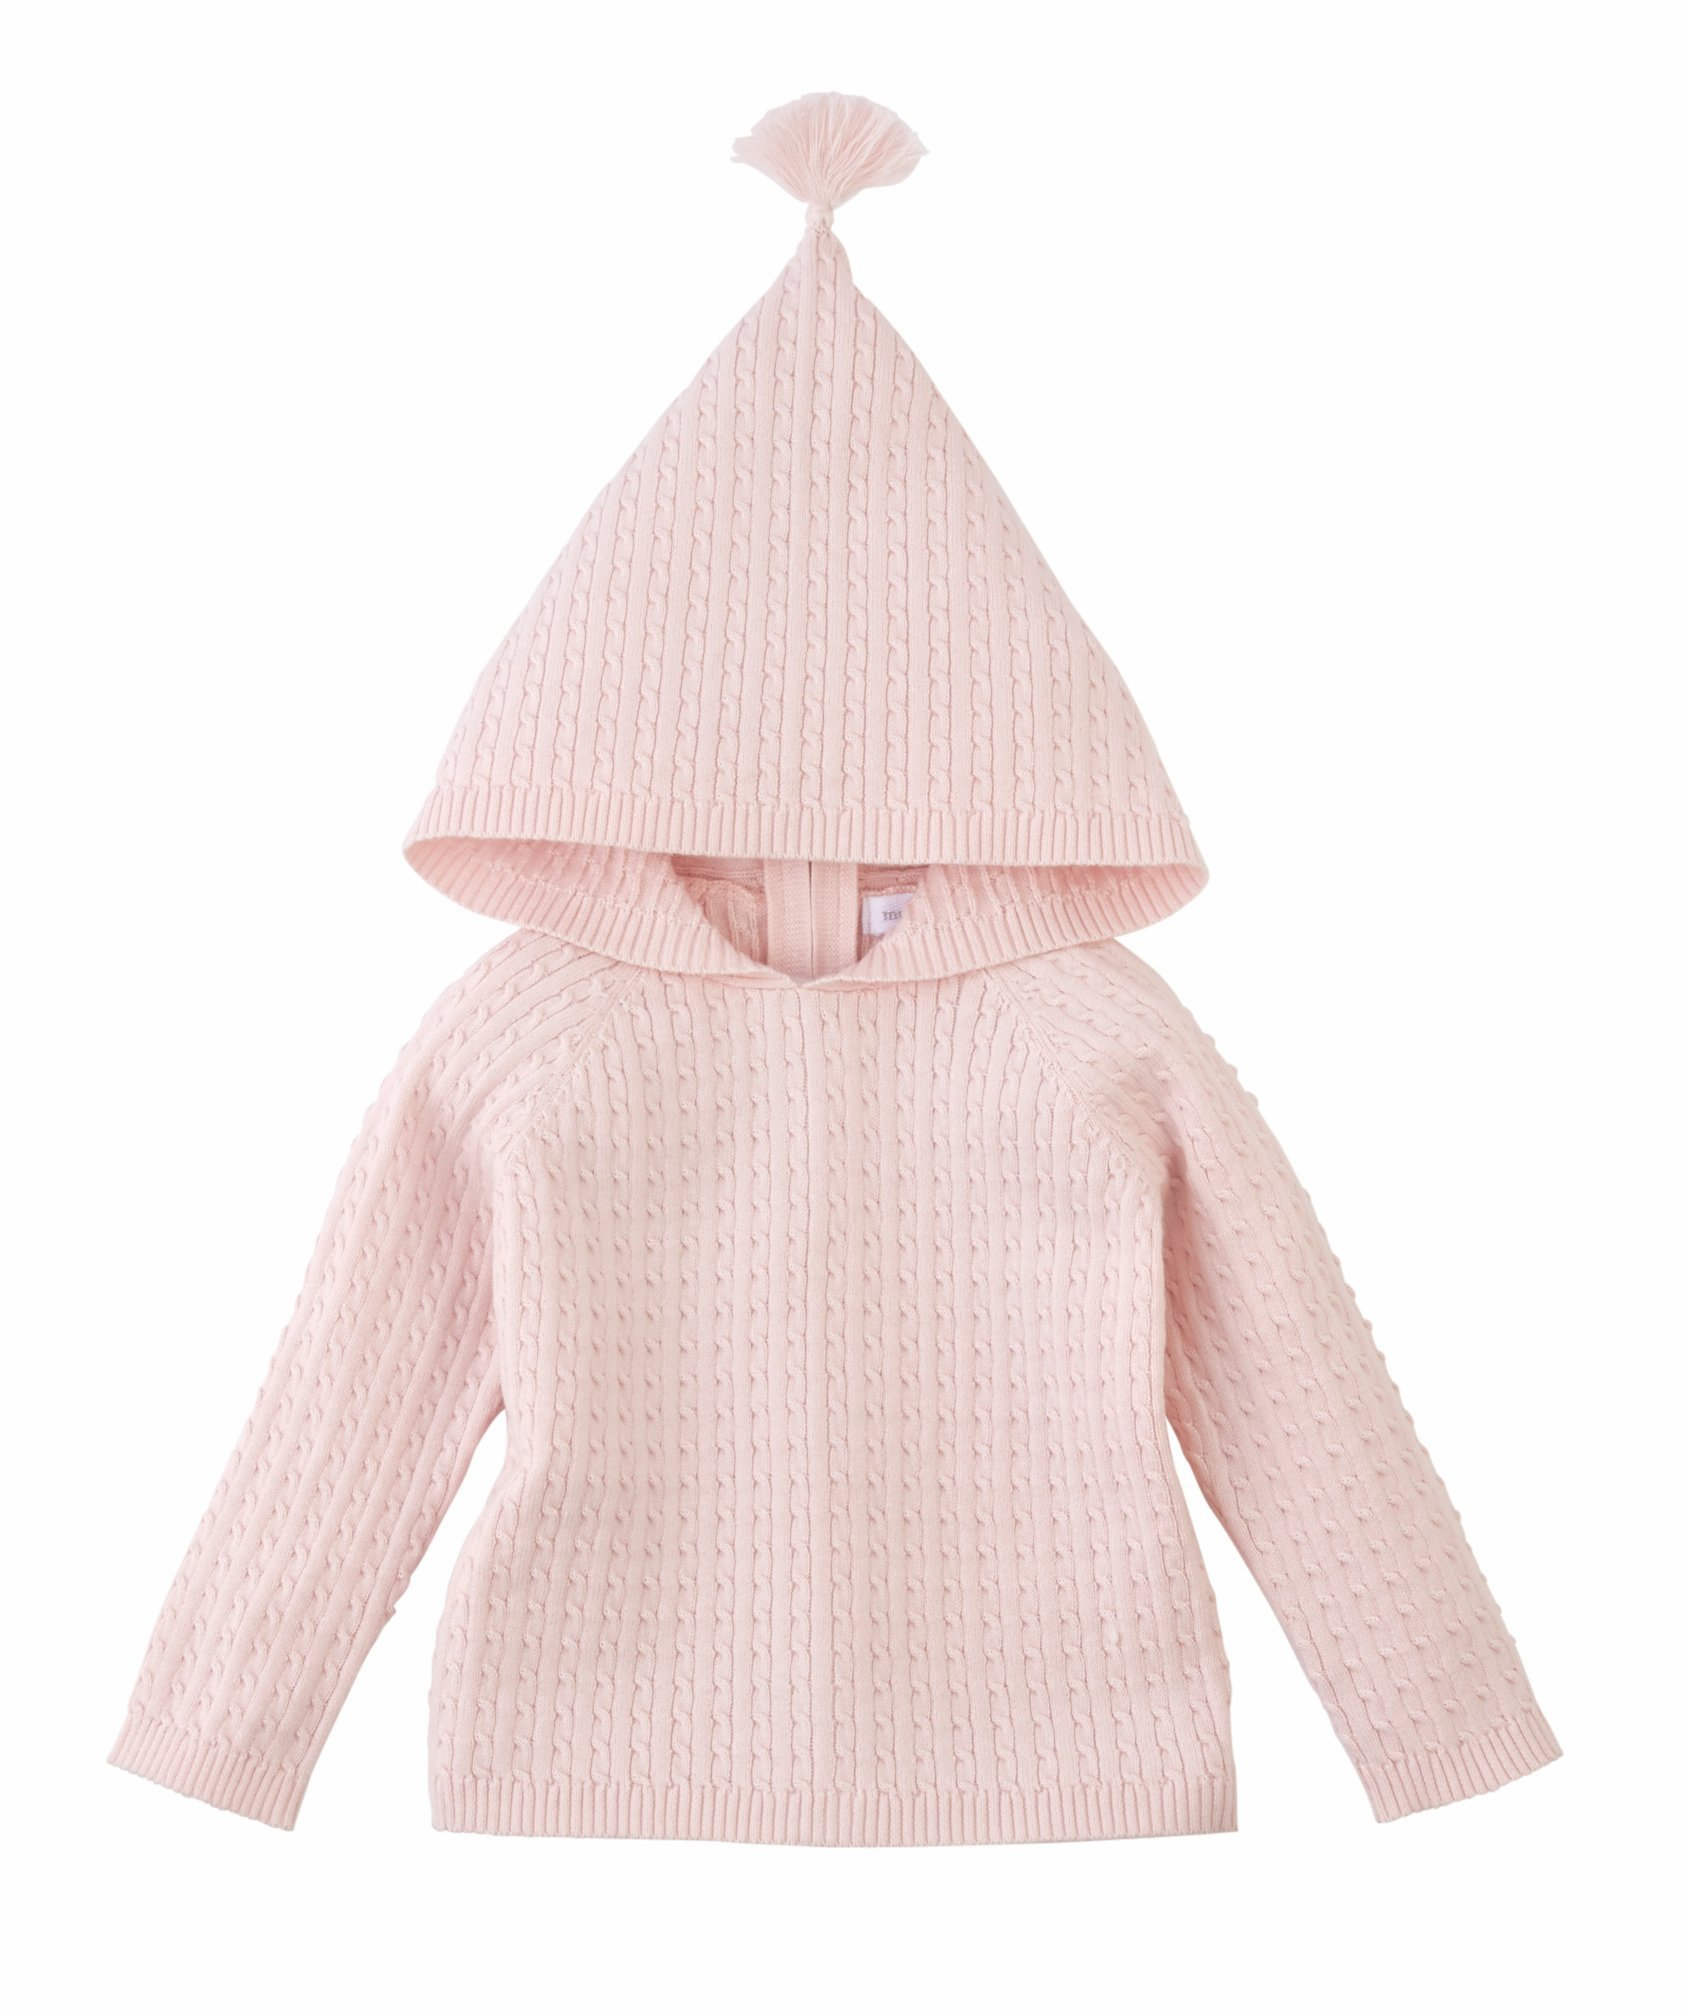 Mud Pie Infant Girls Pink Cable Knit Zip Hoodie (0-6 Months) by Mud Pie